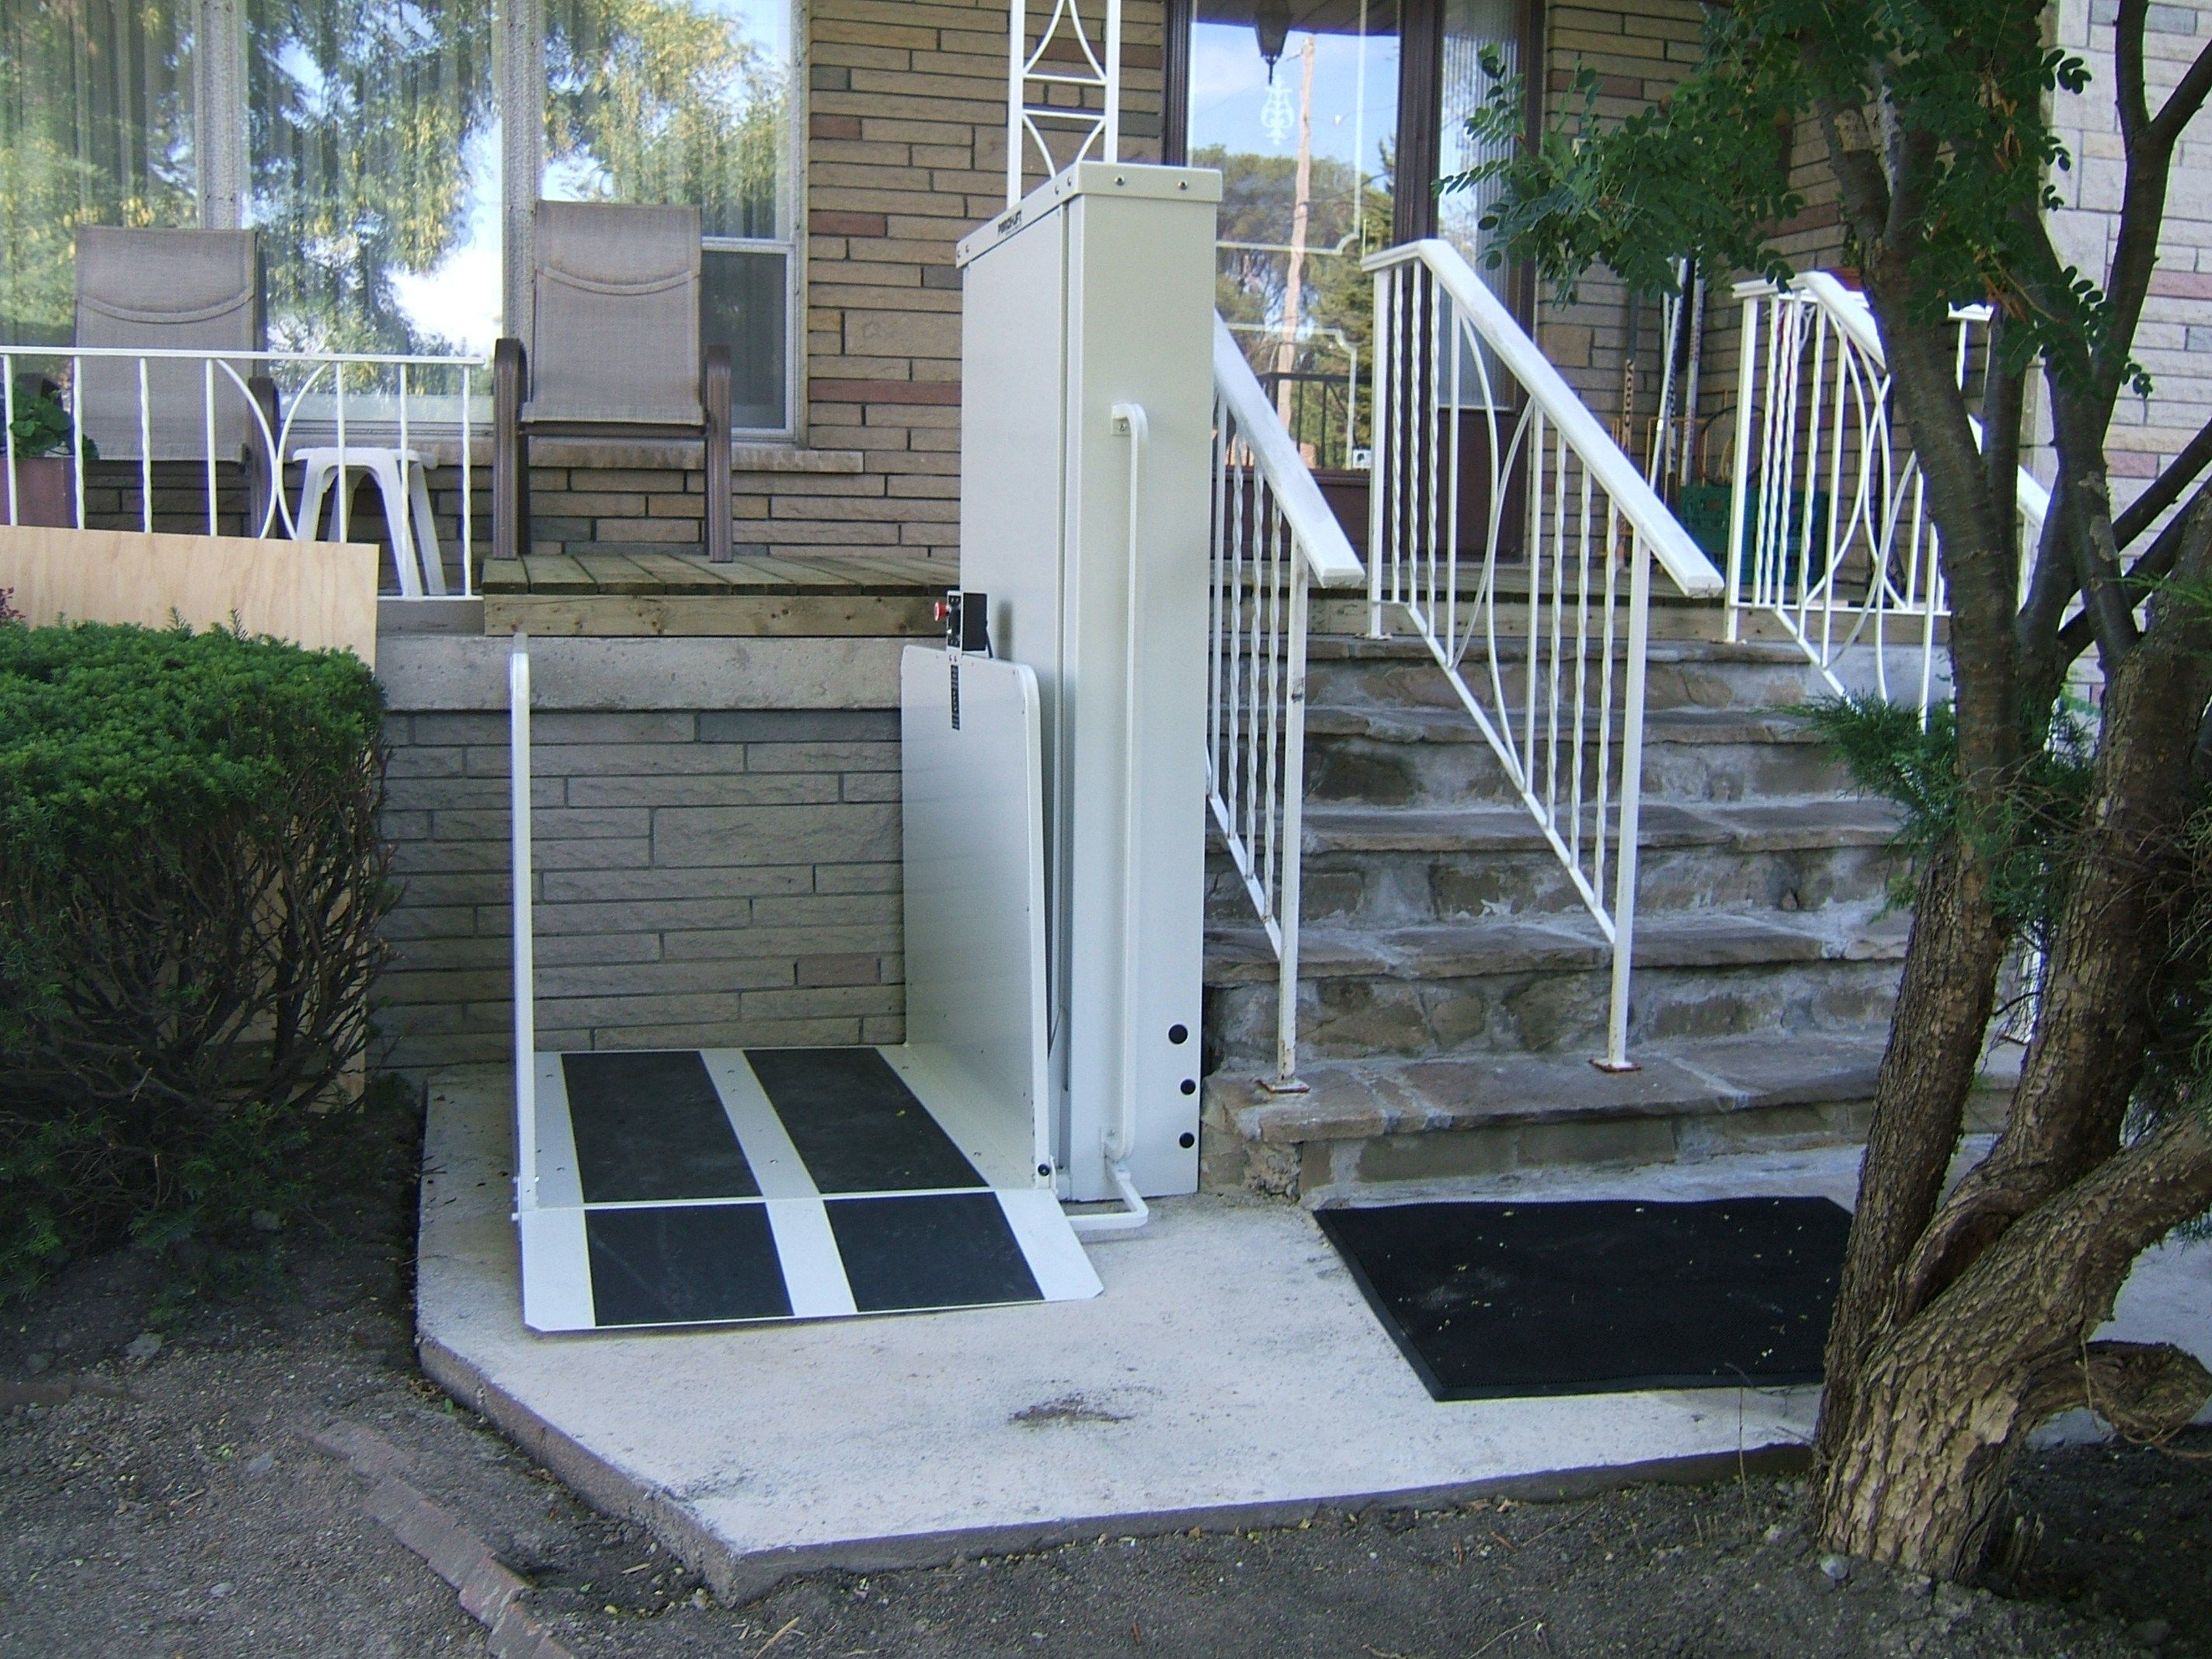 care vpl health ca to vancouver products up serenity vertical porch lift